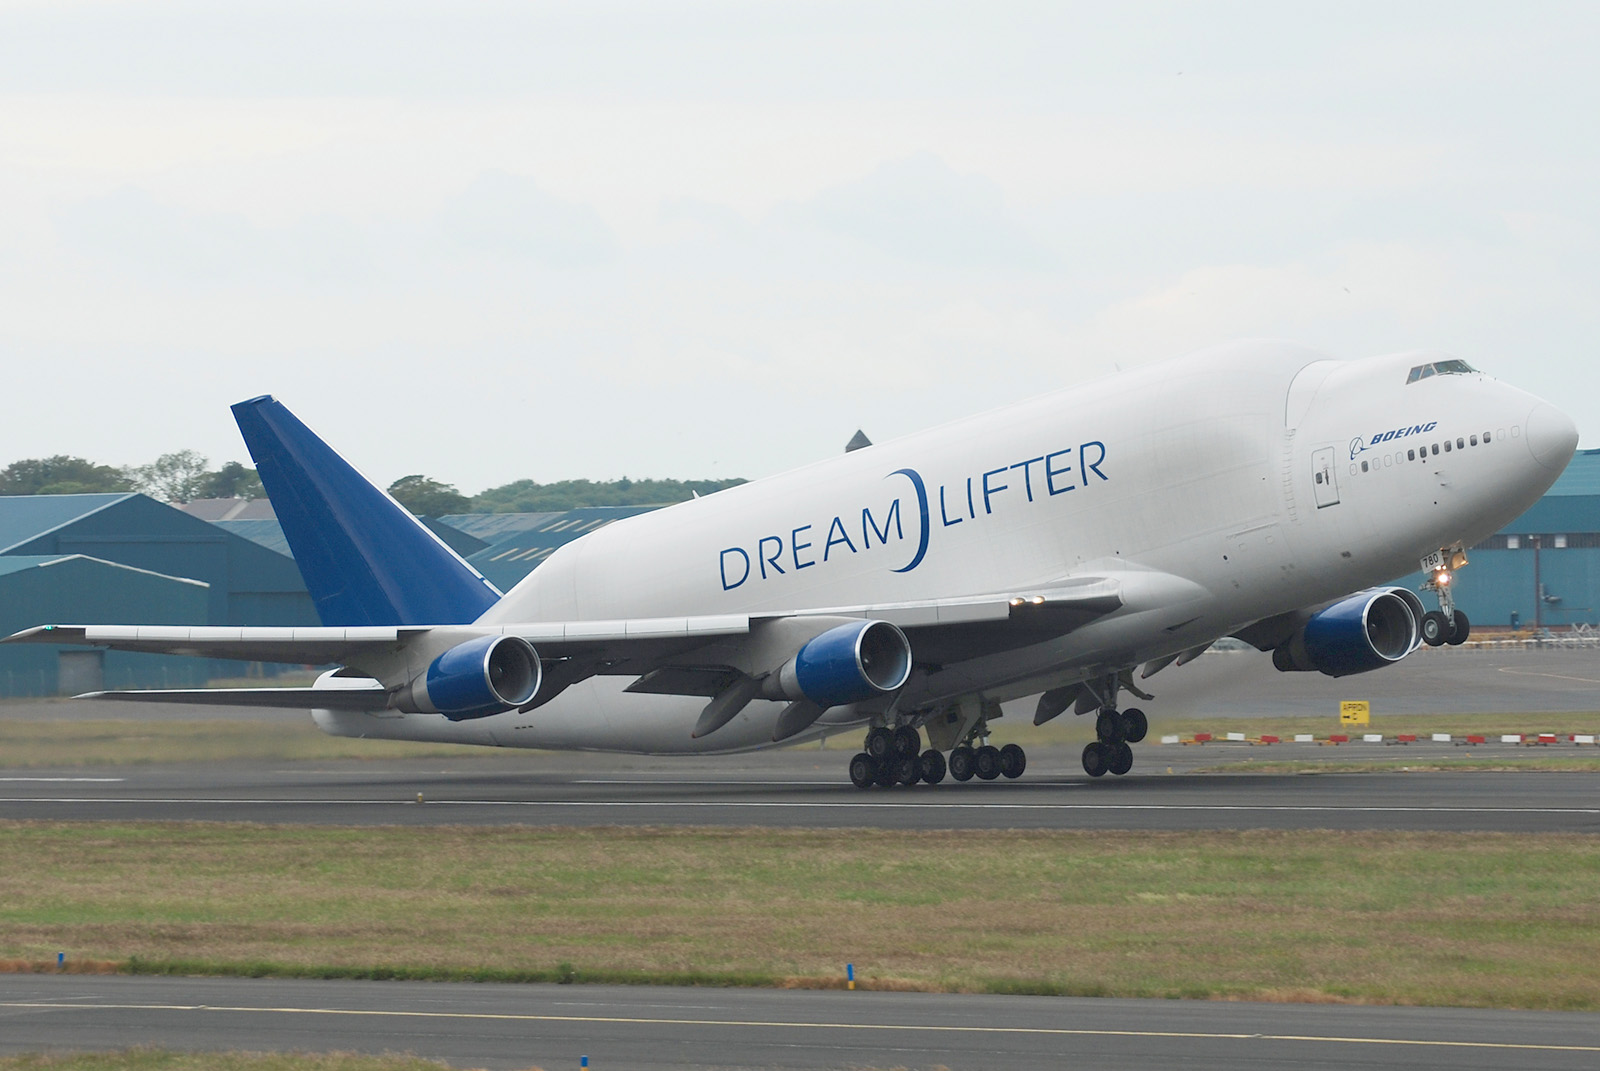 Boeing 747-409LCF Dreamlifter at Edinburgh Airport by Scott Wright.